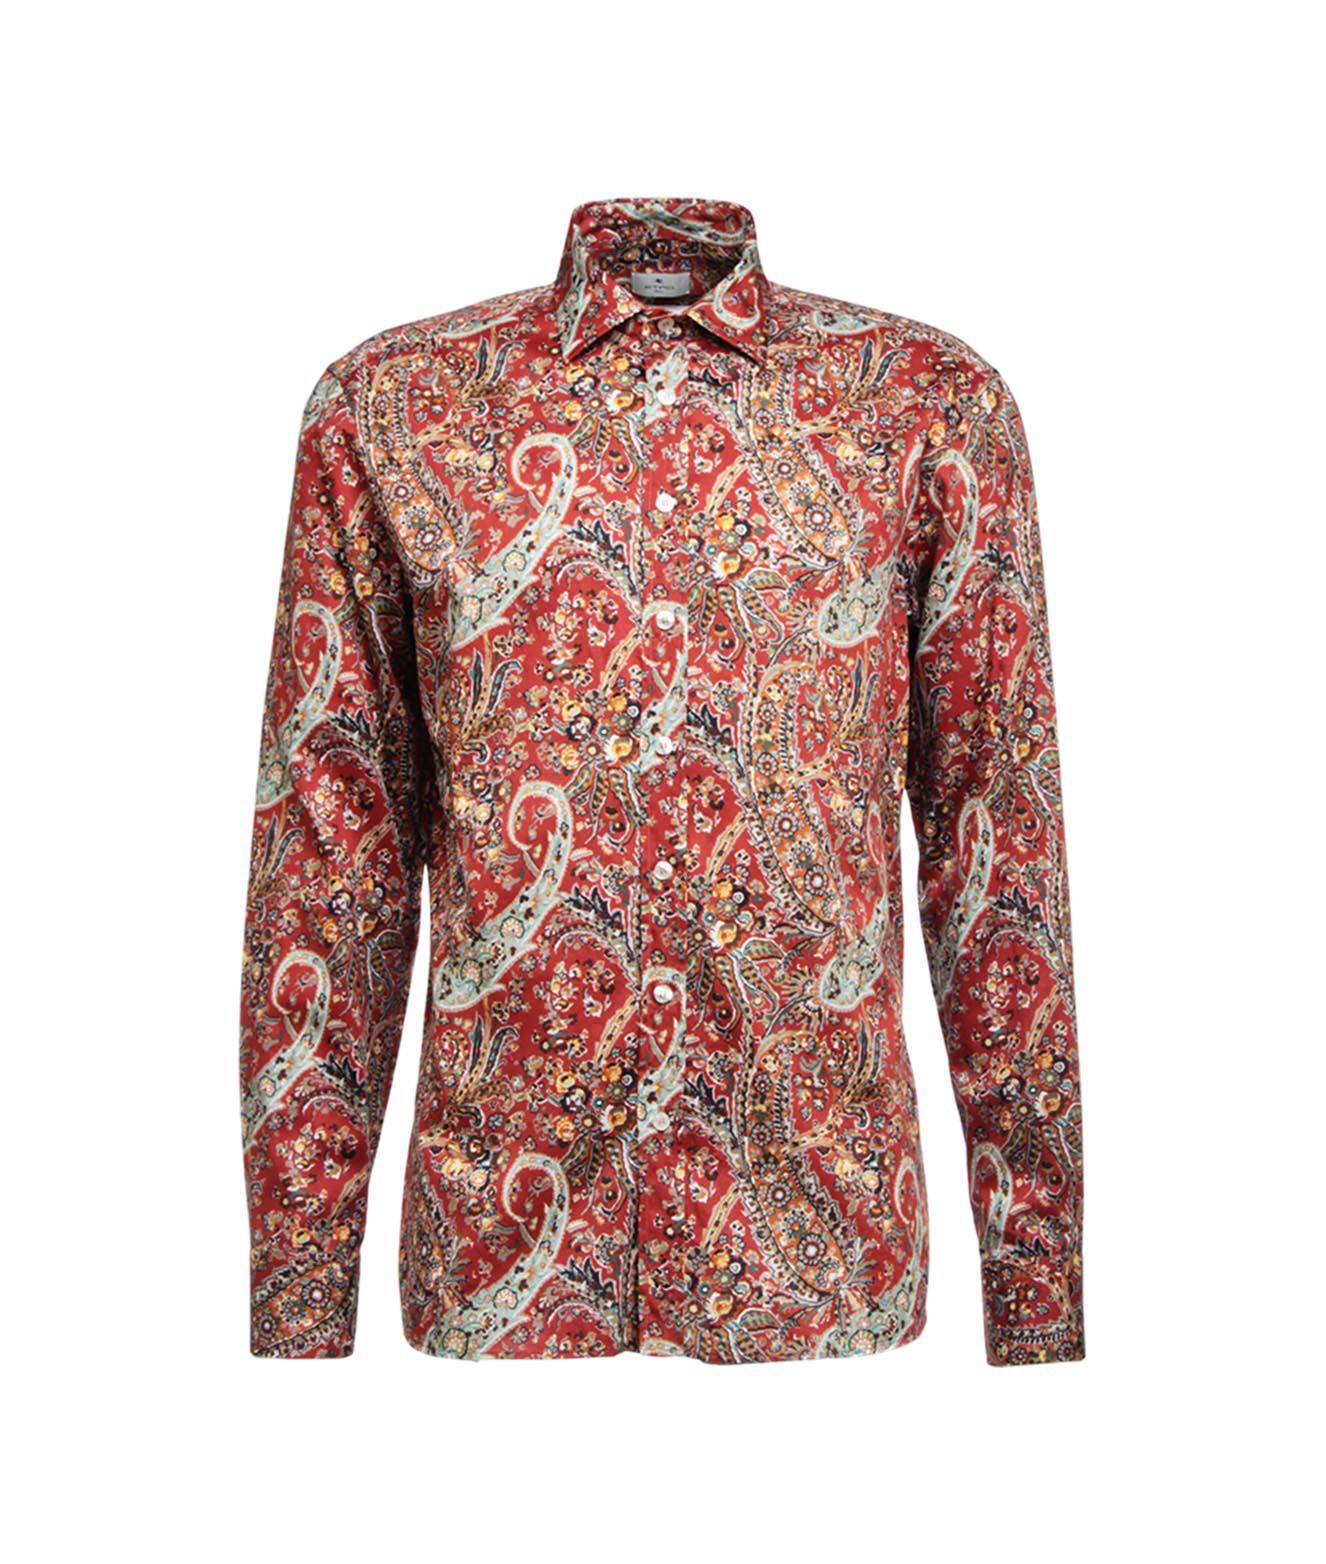 Etro Shirts ETRO MEN'S 16376472111600 RED OTHER MATERIALS SHIRT